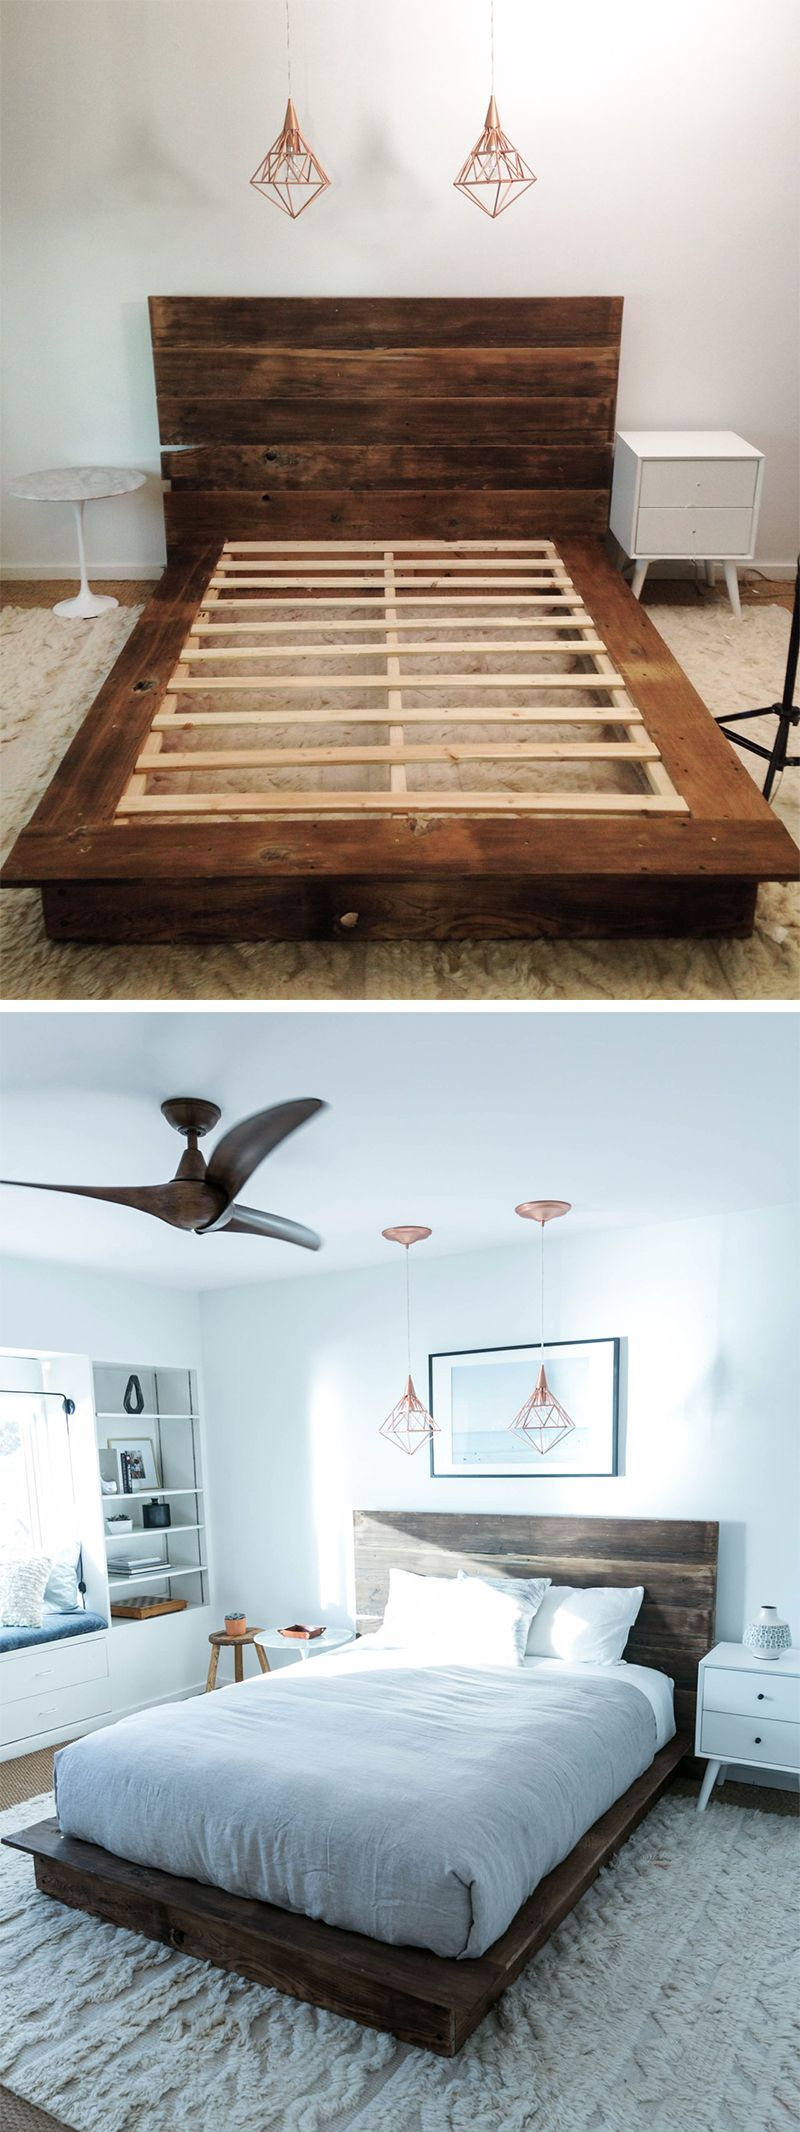 Diy reclaimed wood platform bed wood platform bed Simple wood bed frame designs